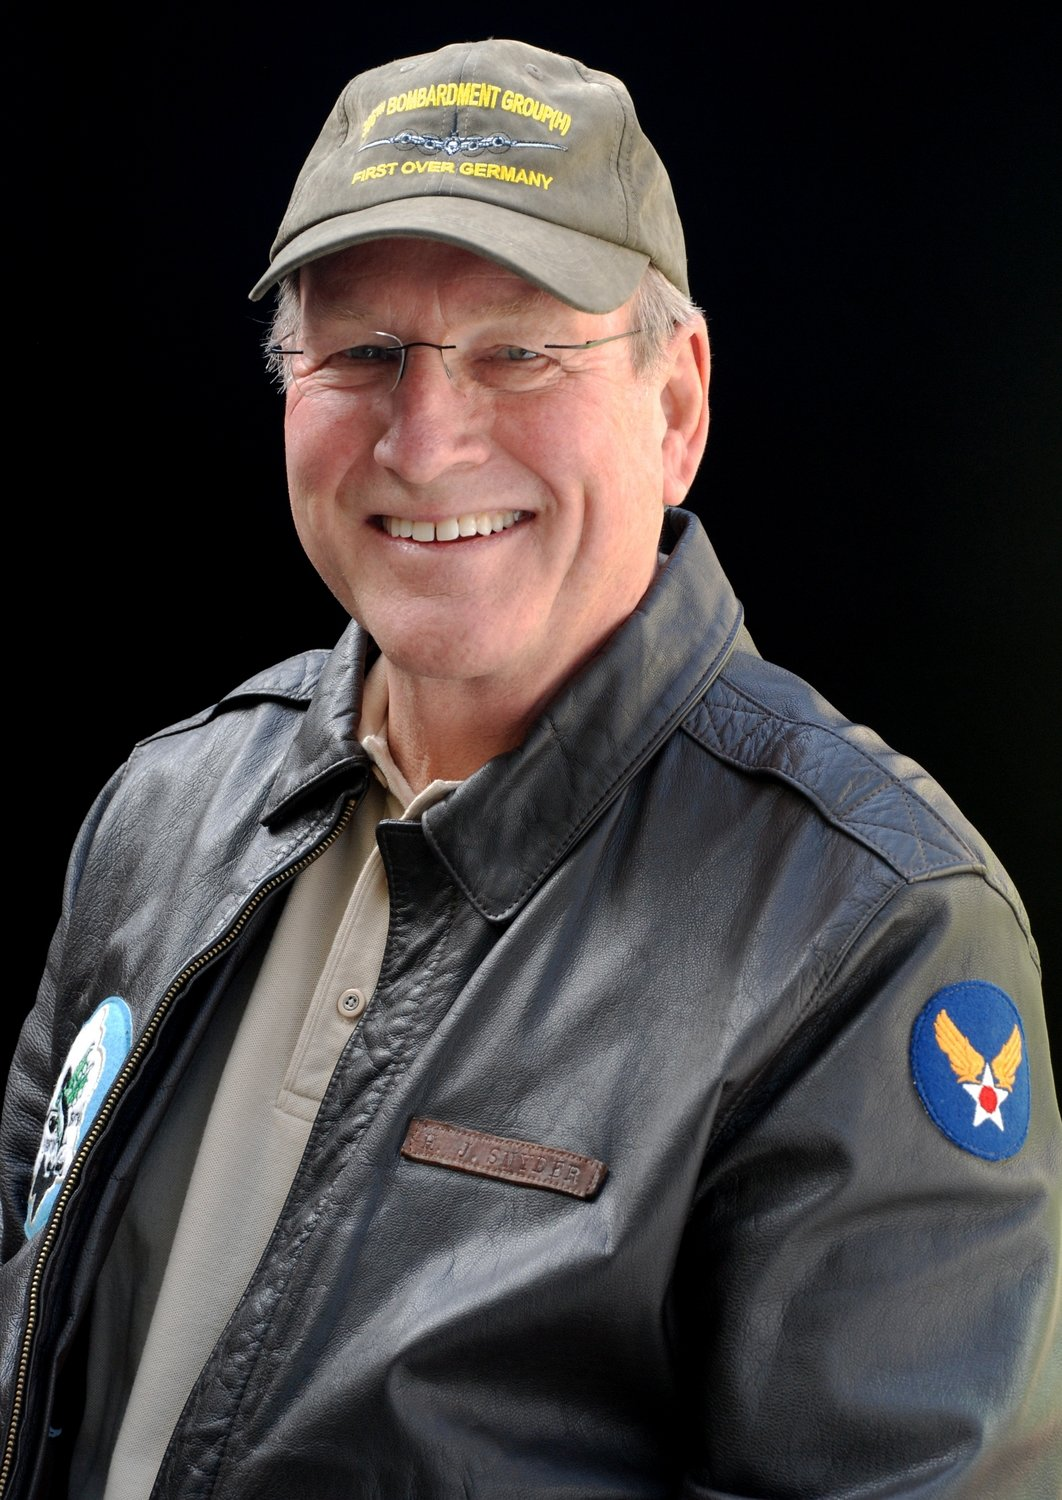 SHOT DOWN: The true story of pilot Howard Snyder and the crew of the B-17 Susan Ruth by Steve Snyder